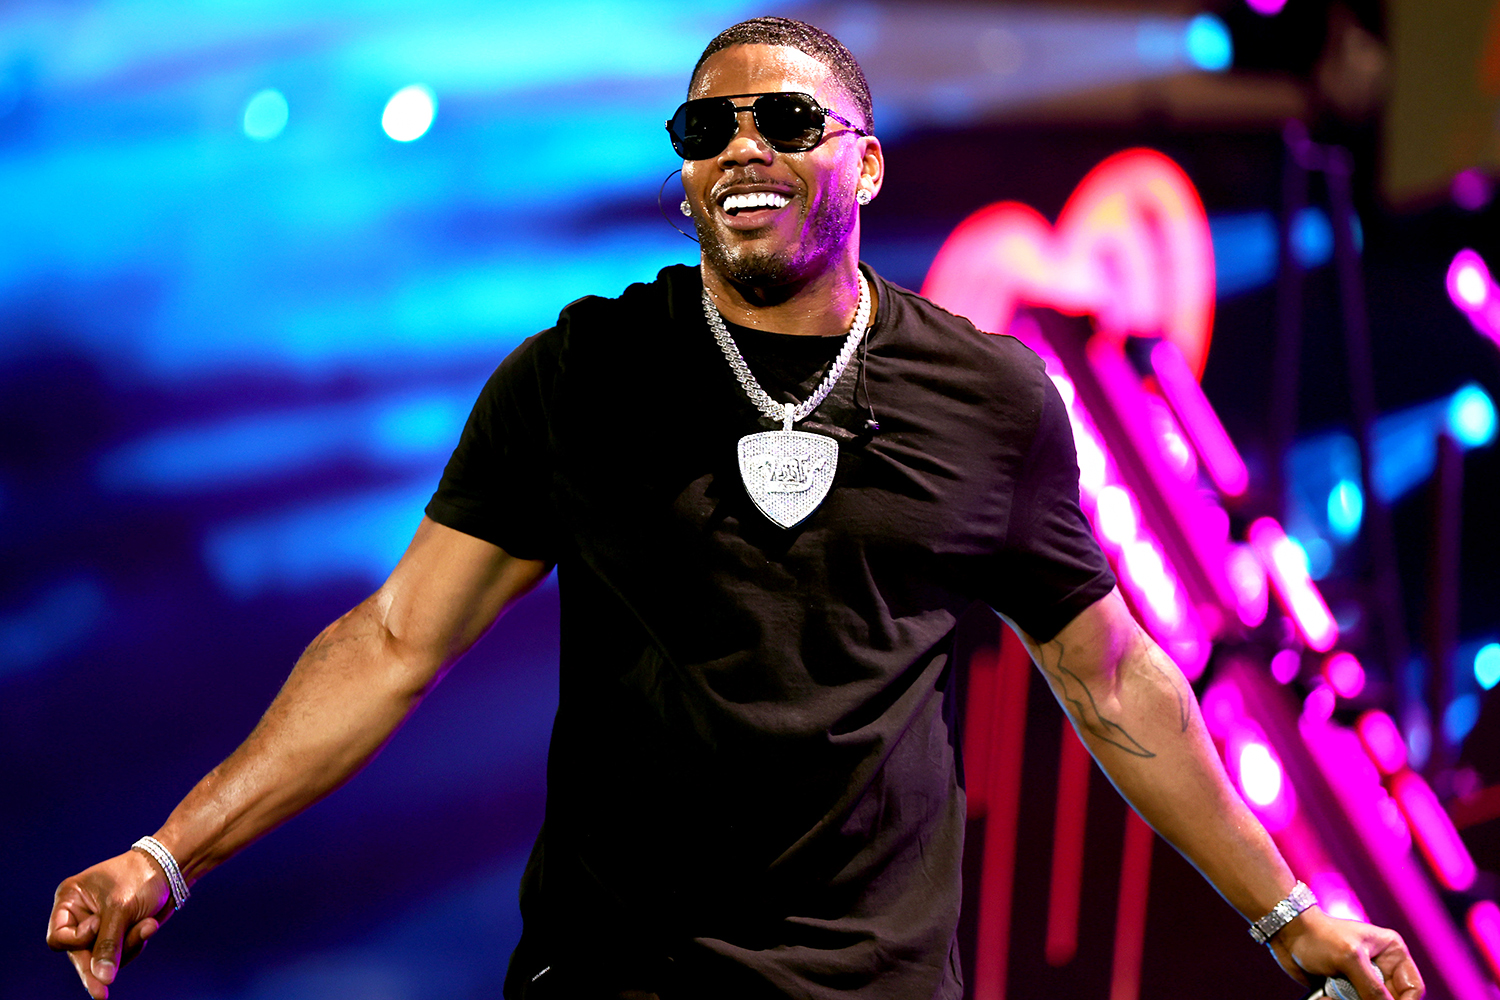 Nelly performs onstage during the 2021 iHeartRadio Music Festival on September 17, 2021 at T-Mobile Arena in Las Vegas, Nevada.